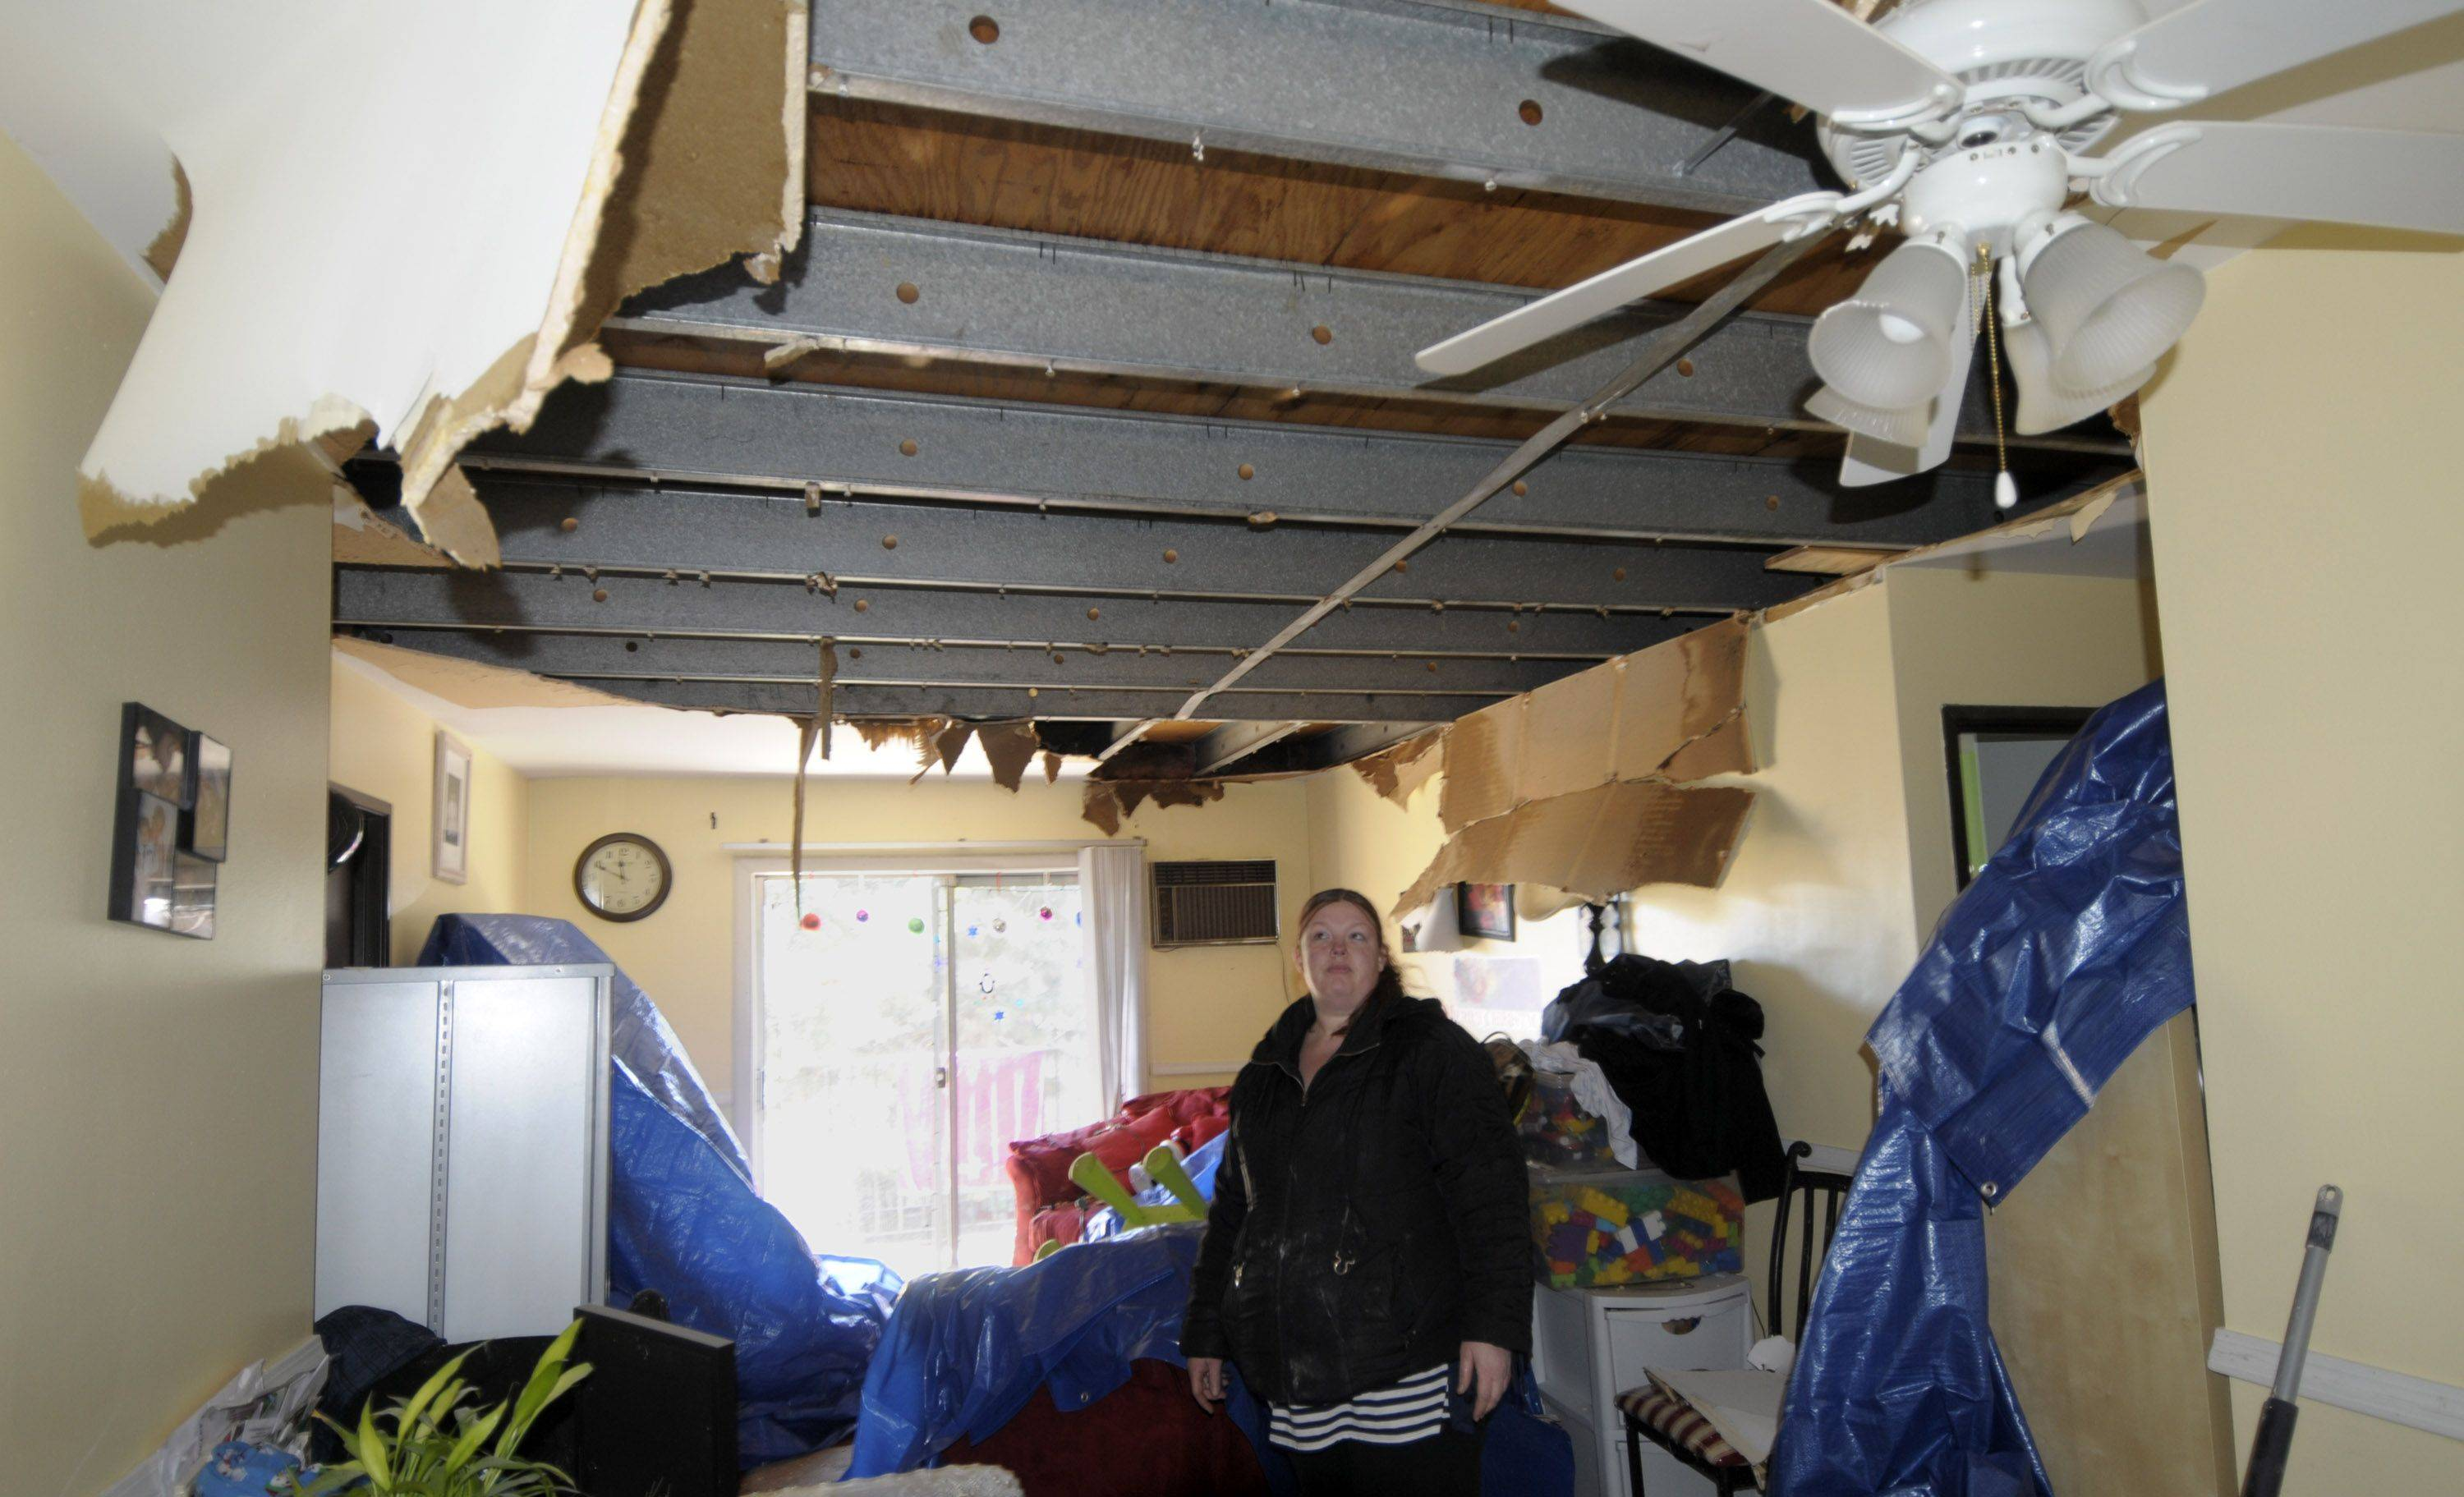 Lorena Marquez surveys the damage in her second-floor apartment.